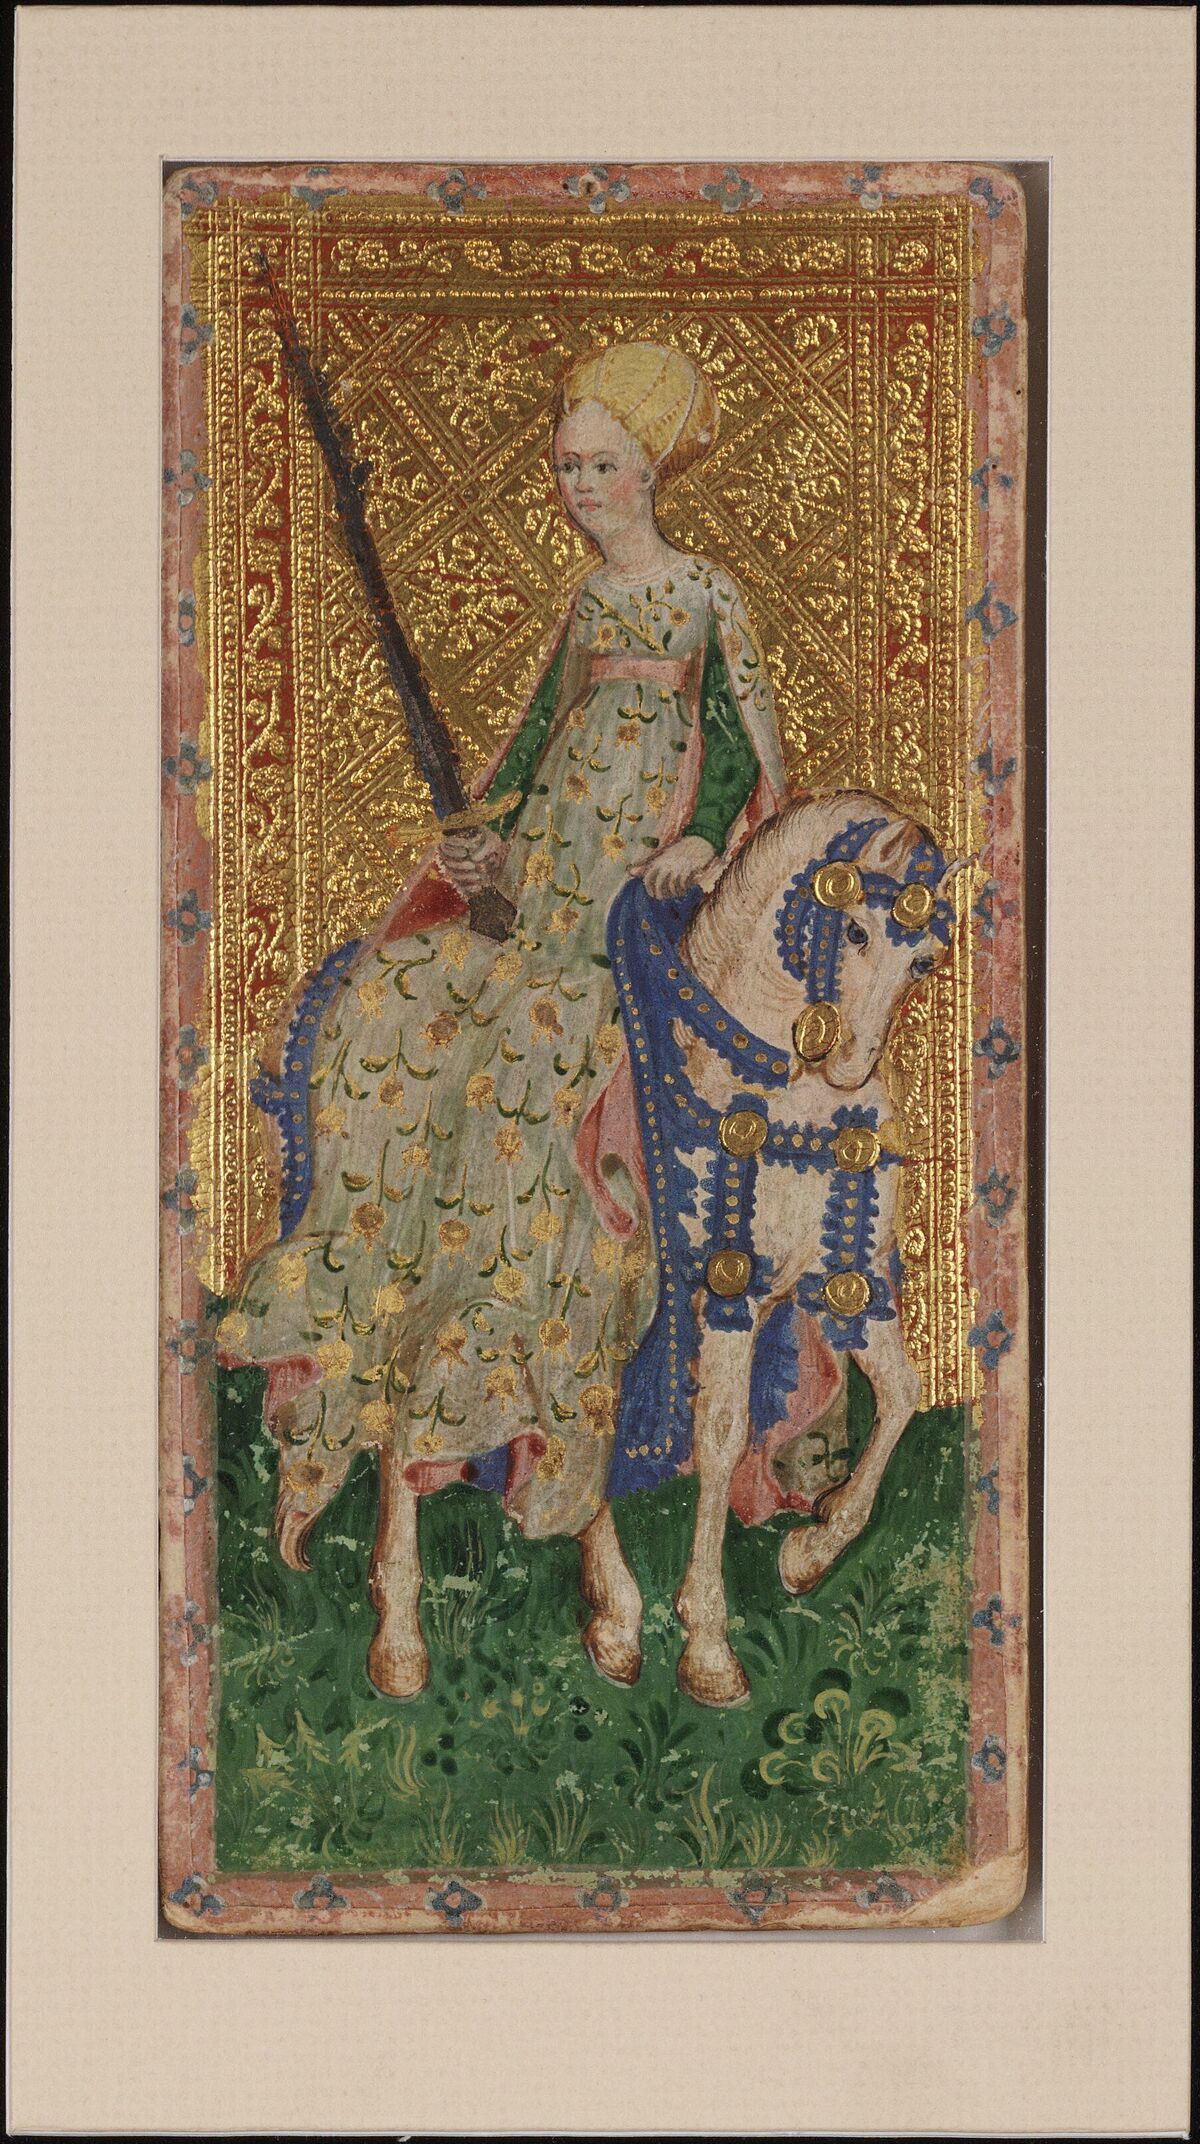 Bembo Bonifacio, Female Knight (Swords), 1428-1447. Visconti Tarot from the Cary Collection of Playing Cards. Courtesy of the Beinecke Rare Book & Manuscript Library at Yale University.